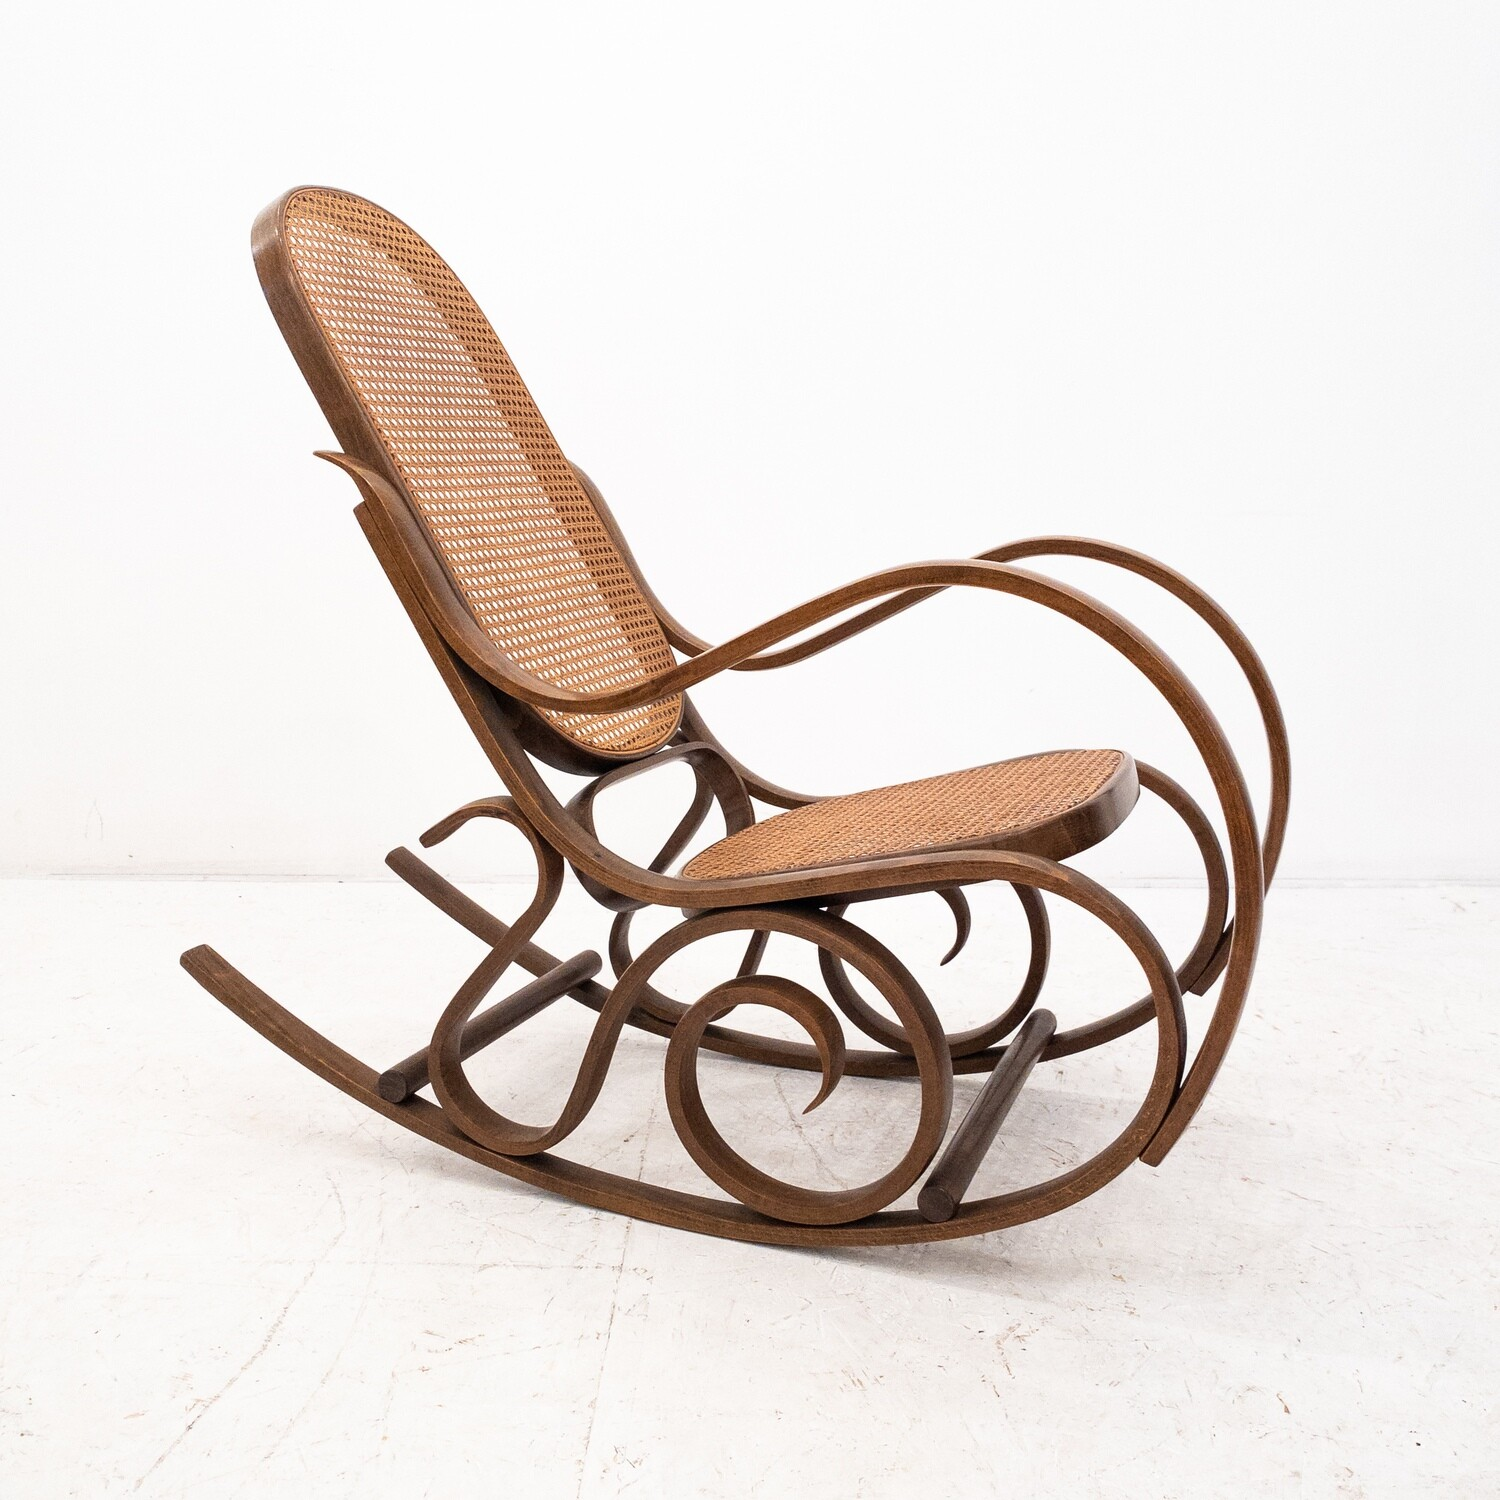 Thonet style wooden rocking chair